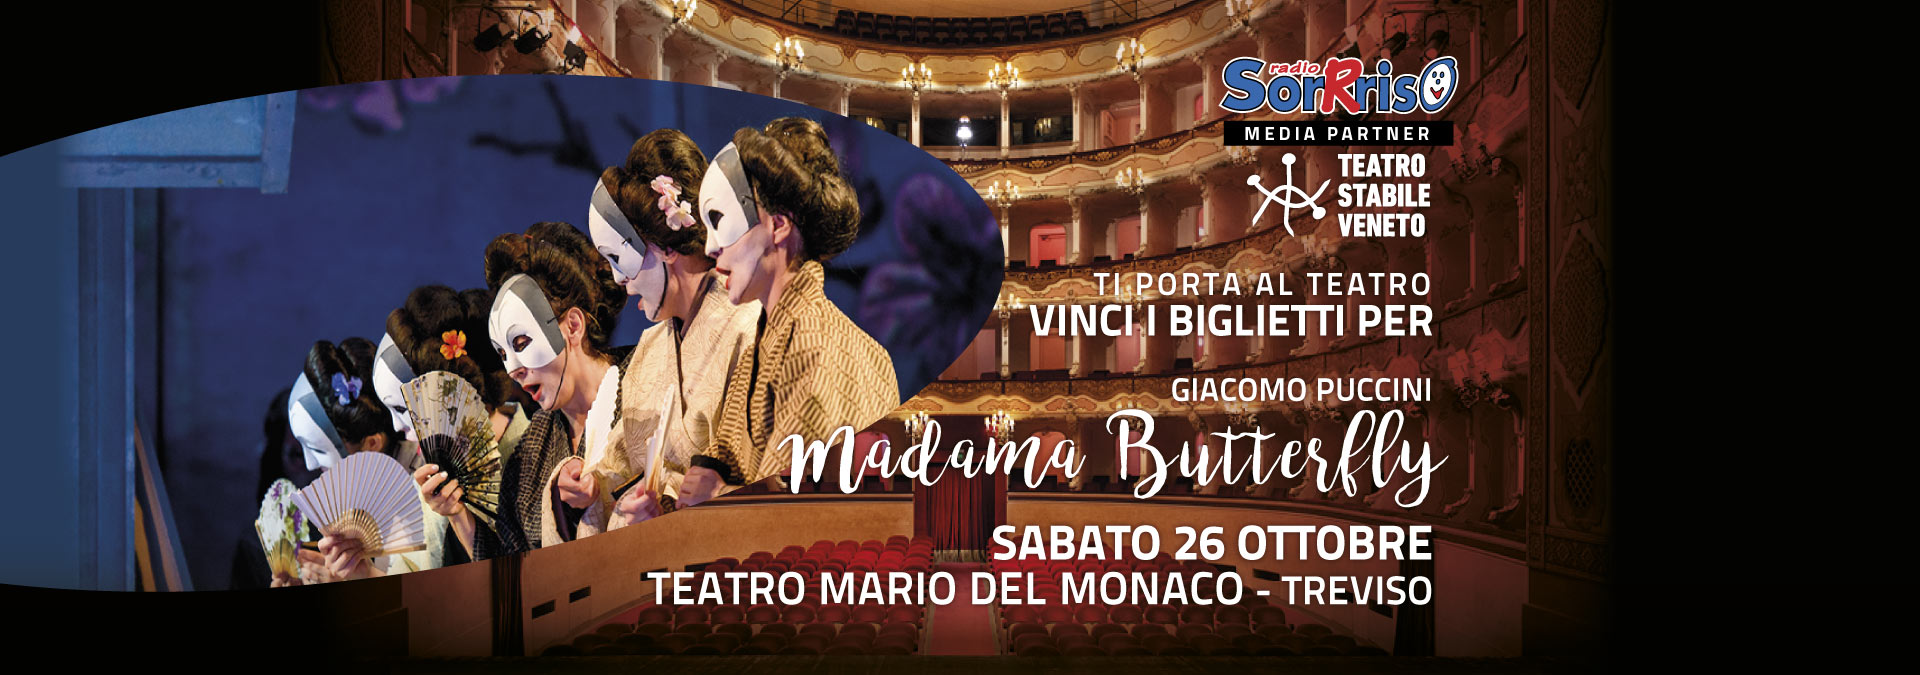 Madama Butterfly - Treviso